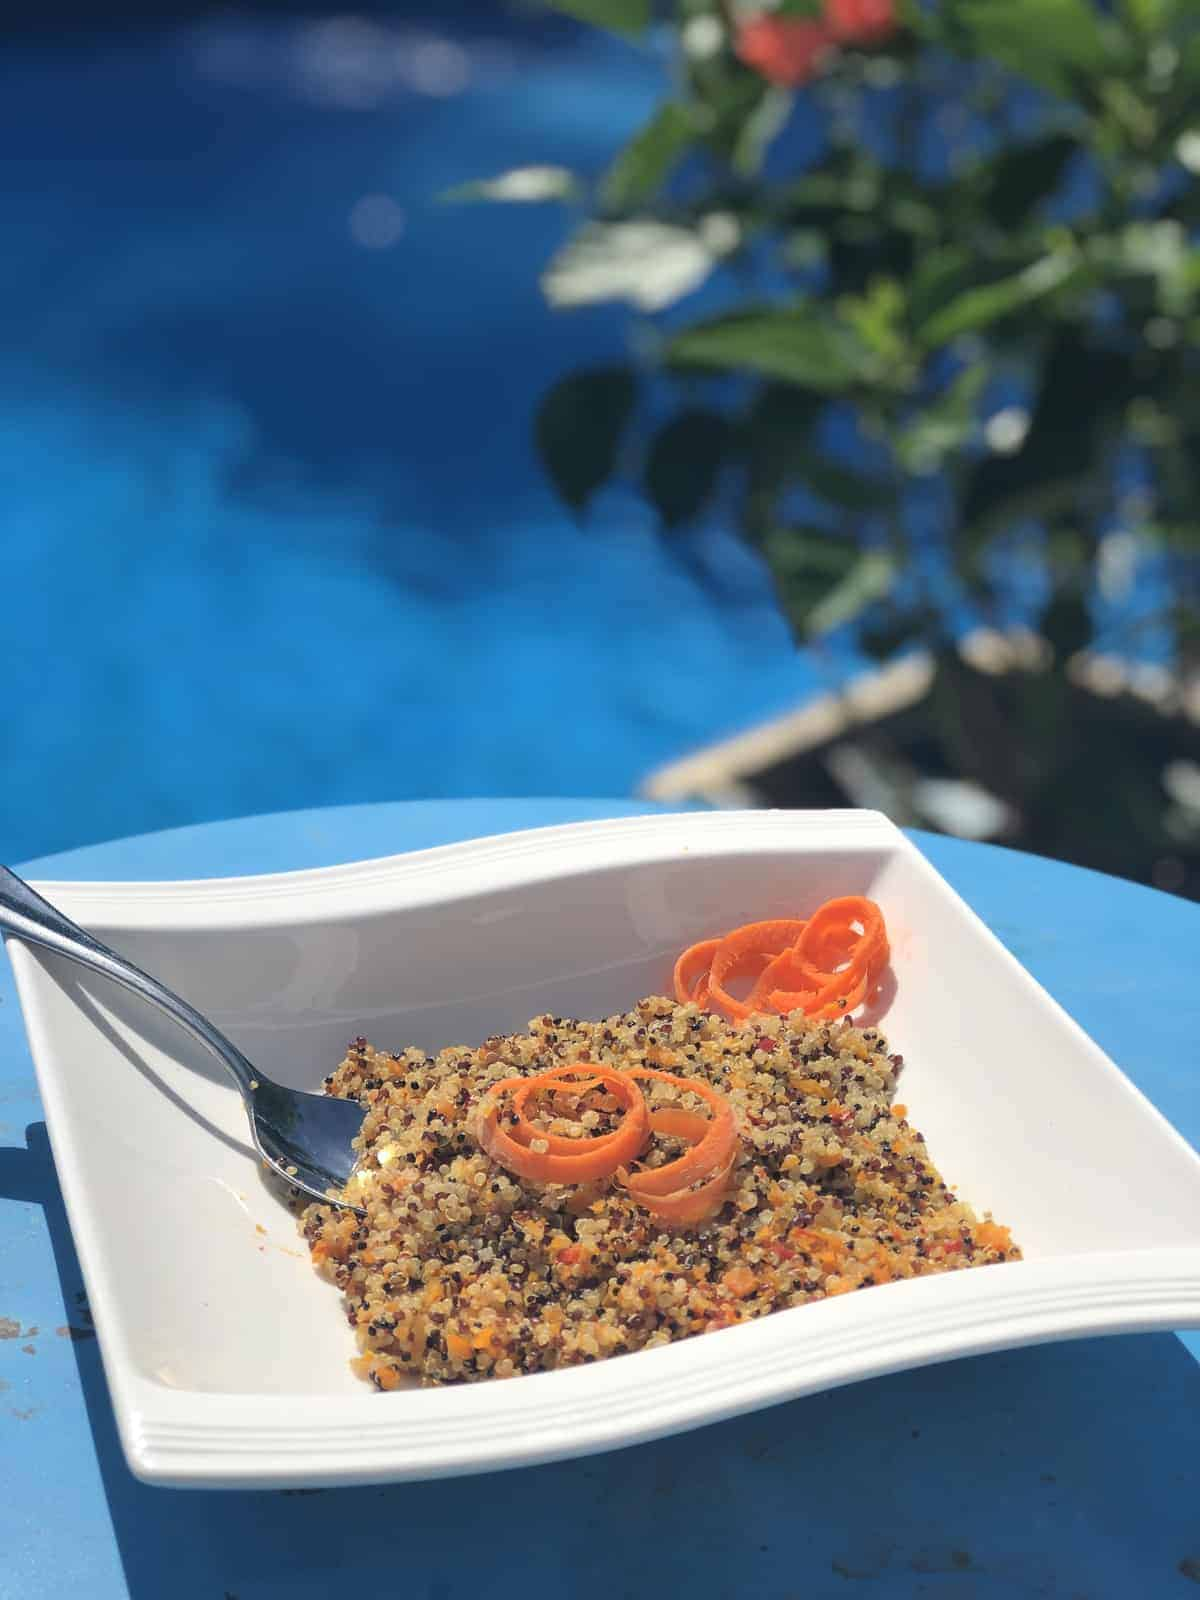 quinoa with carrot spirals in a white bowl with a spoon on a blue table by the pool